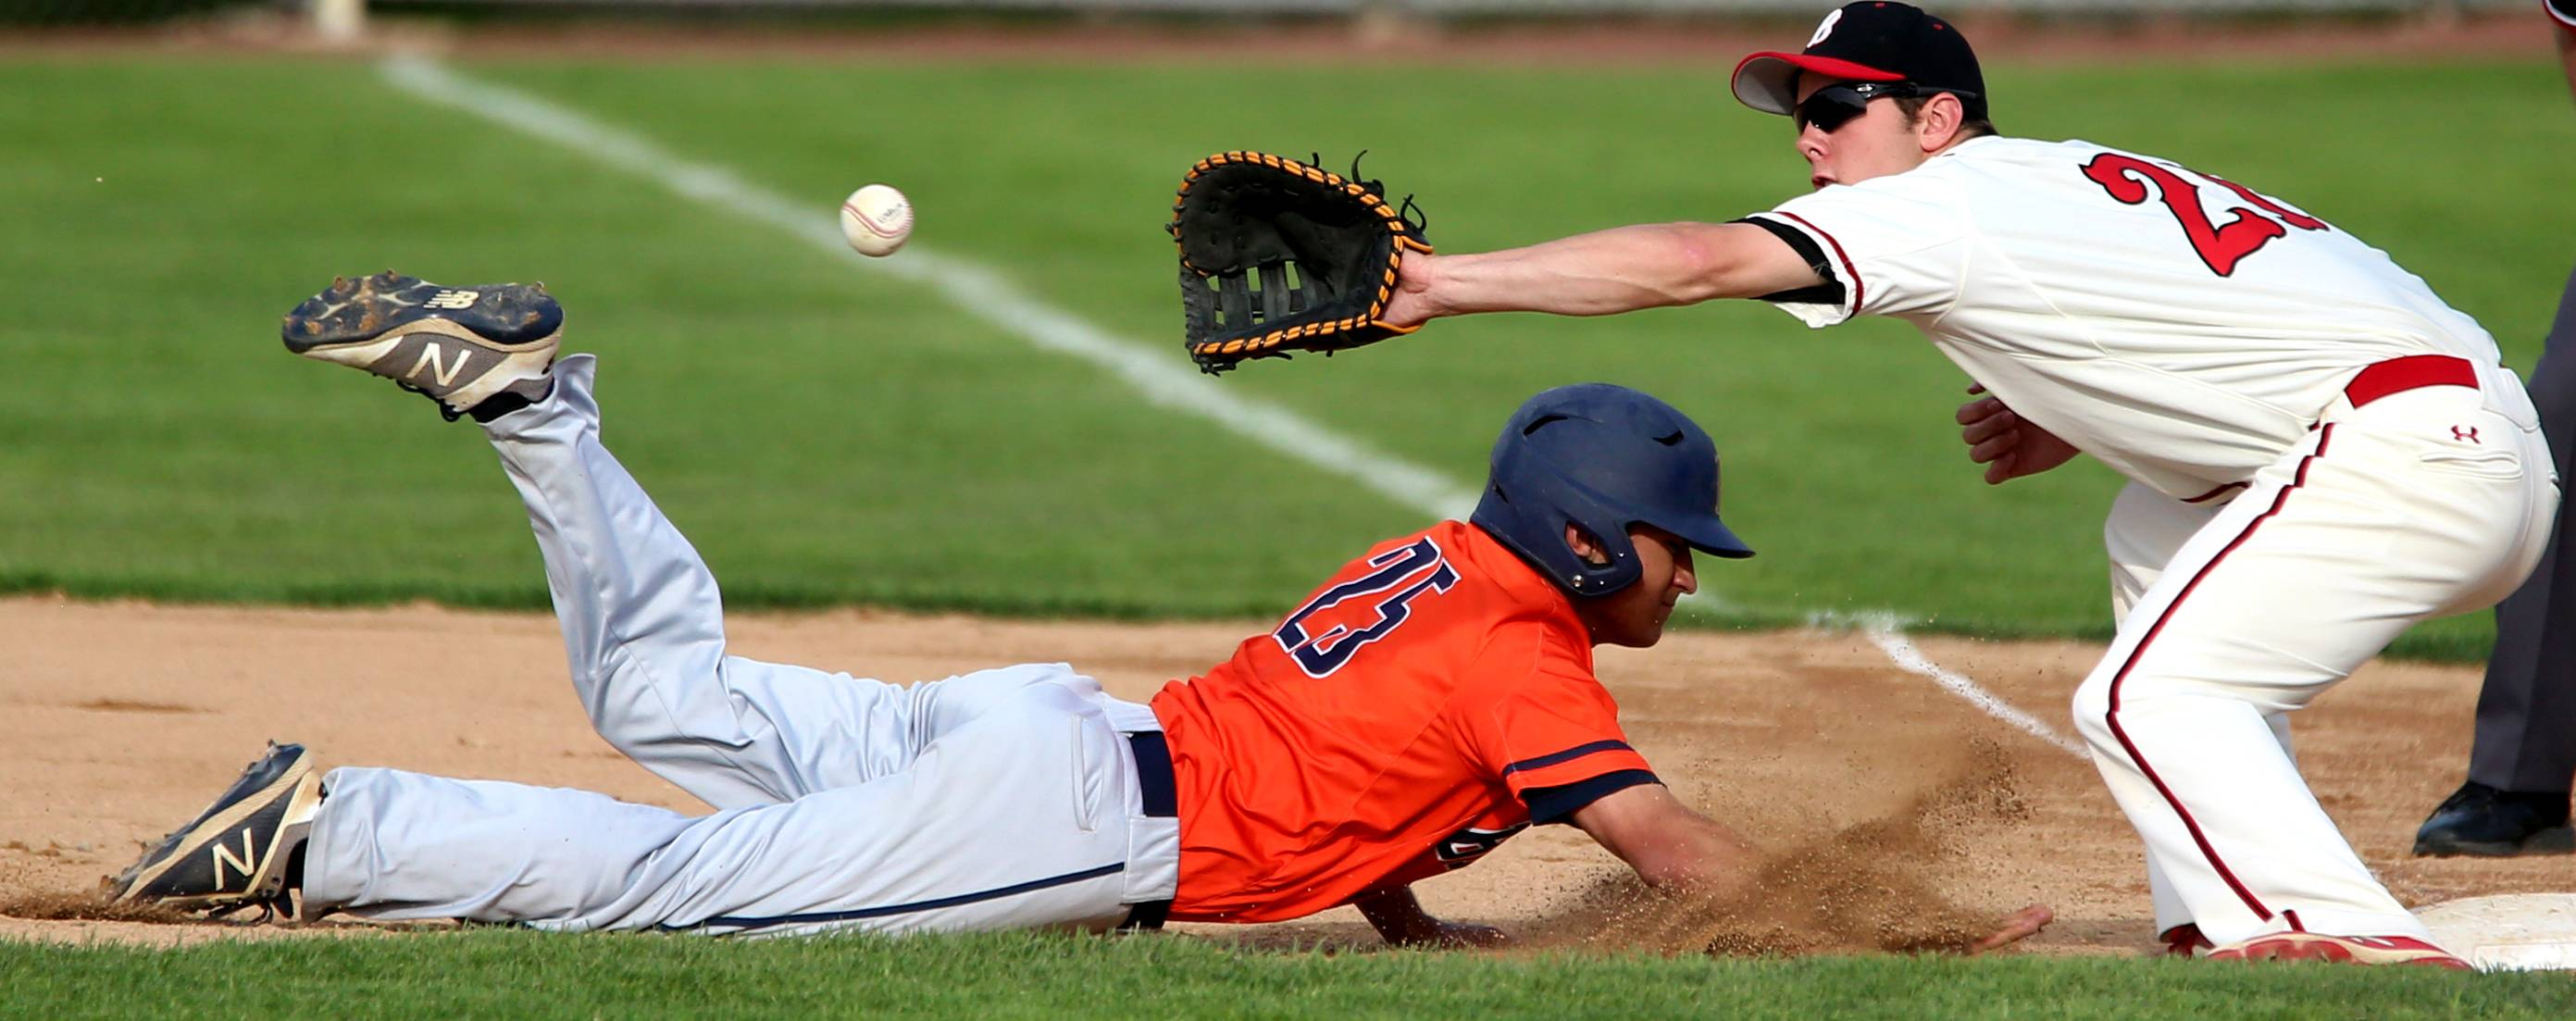 Buffalo Grove's Alex Paul gets safely back to first base as Barrington's David Mitchell fields the pickoff throw during the Mid-Suburban League title game at Coach Kirby Smith Field in Barrington on Thursday.